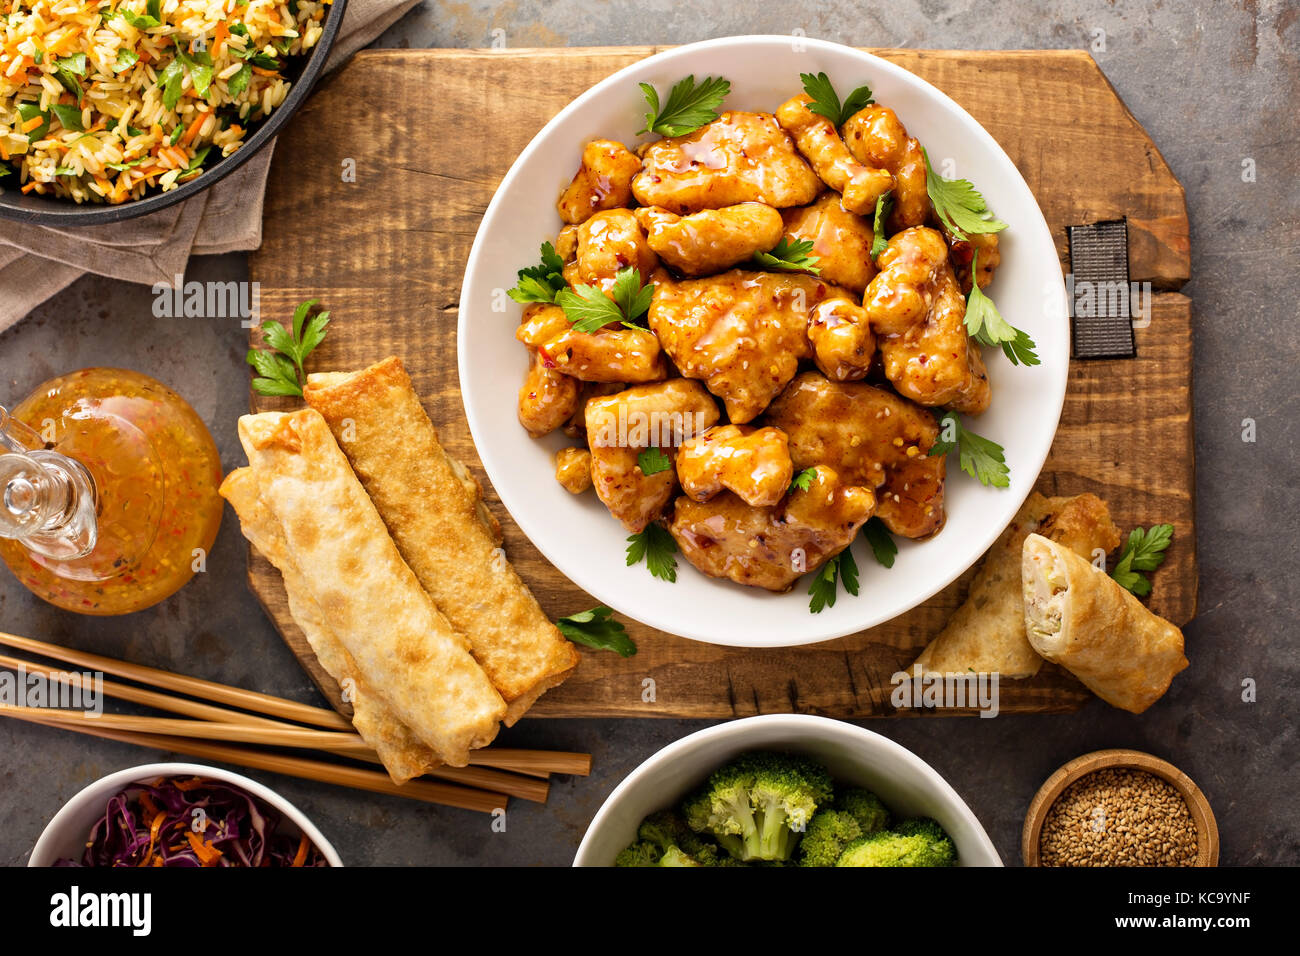 Spicy sweet and sour chicken with rice and cabbage - Stock Image